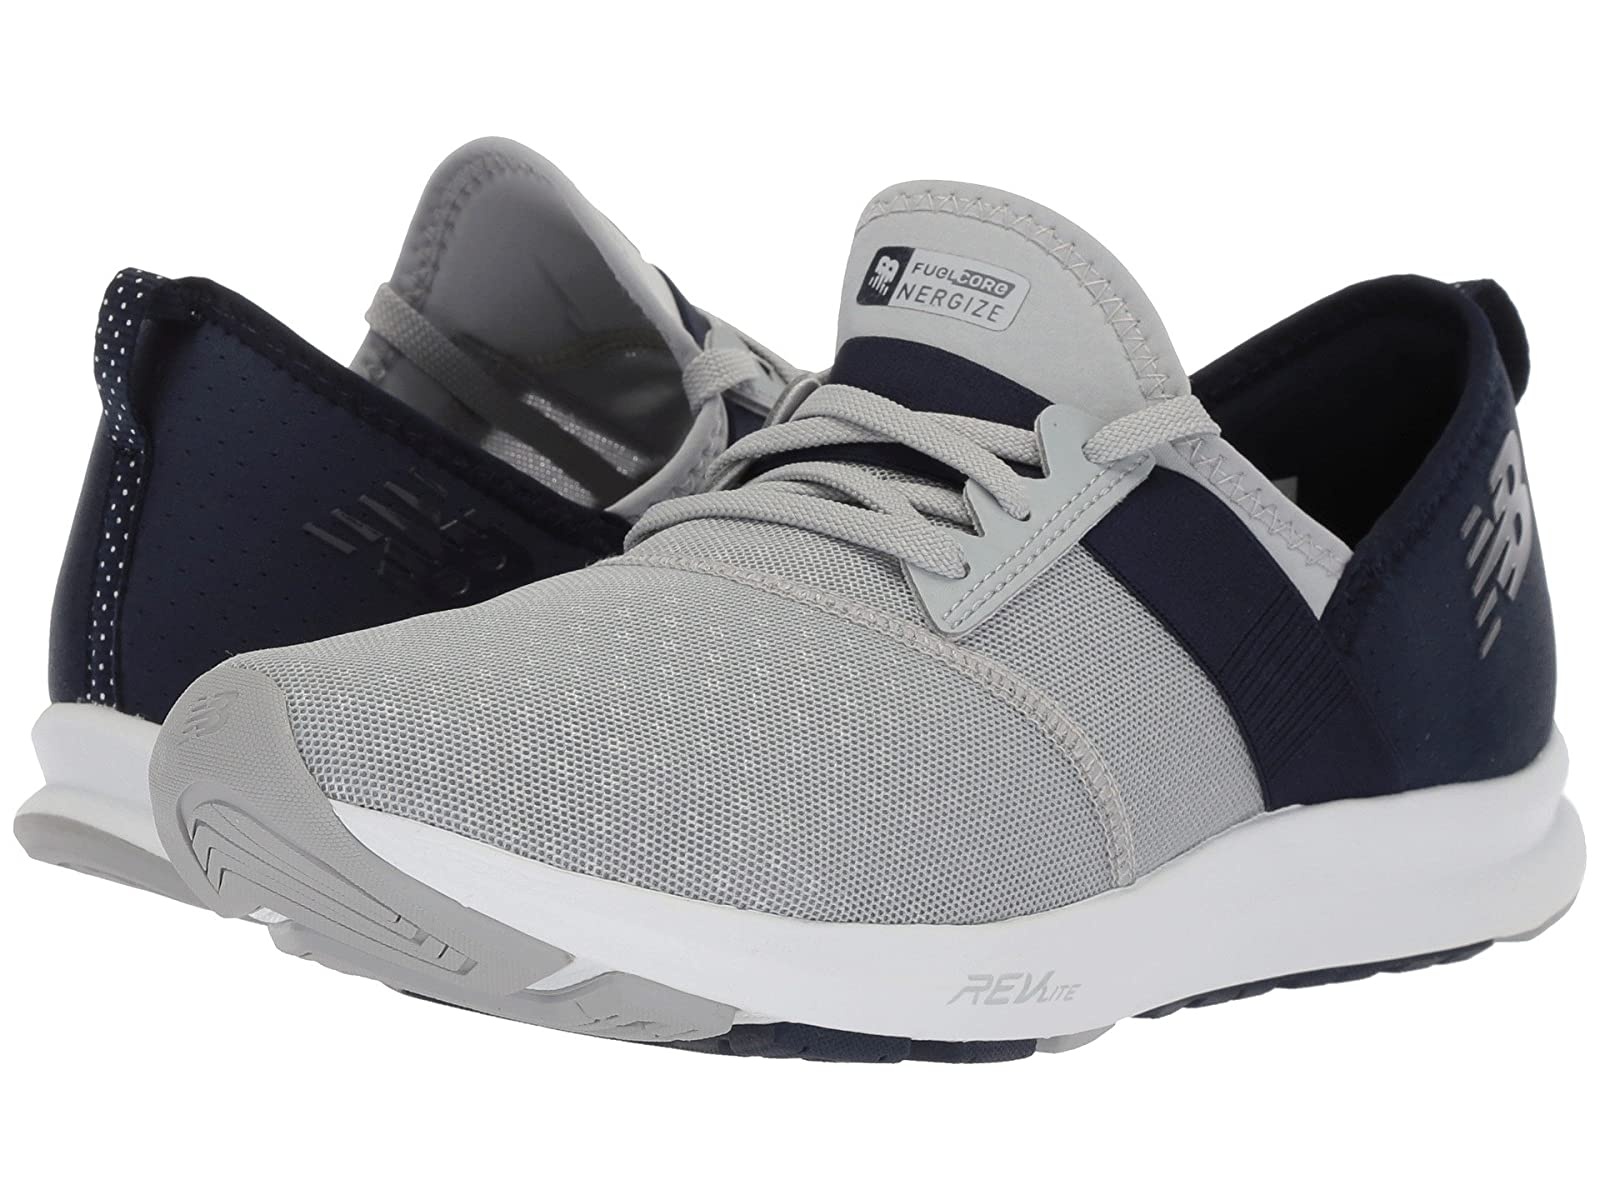 New Balance FuelCore NERGIZEAtmospheric grades have affordable shoes